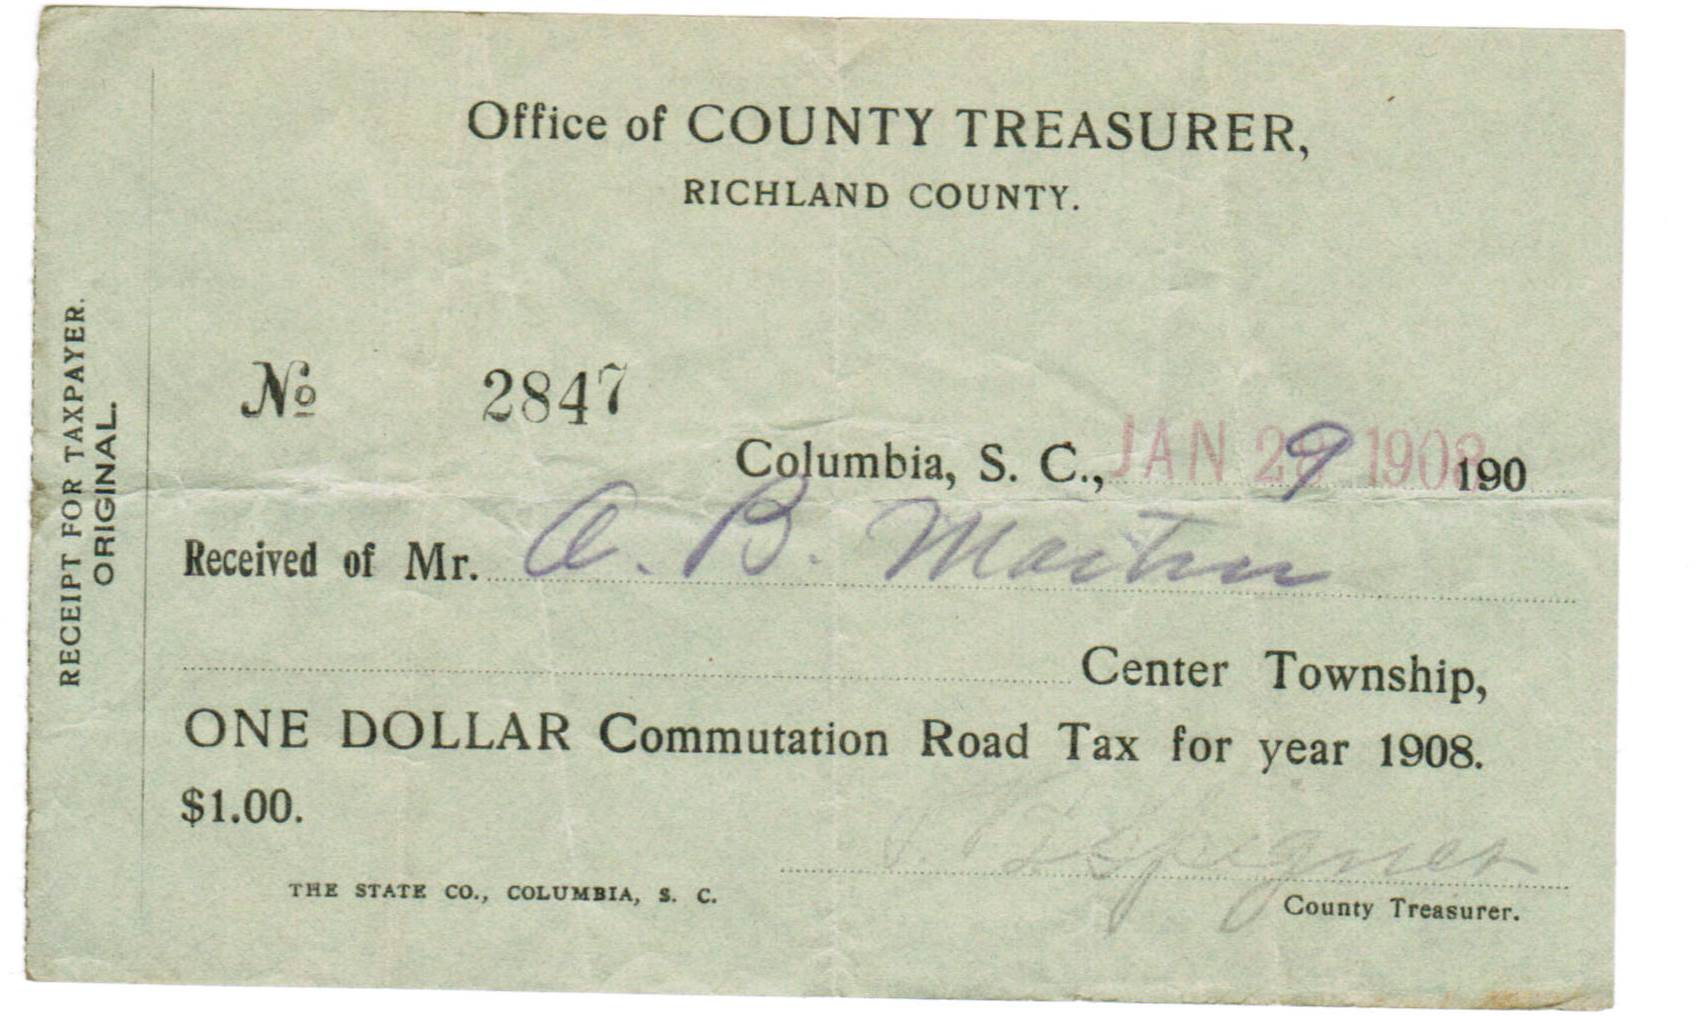 January 1908 receipt of tax payment show name of payee and signature of Treasurer. Receipt paper is pale green. Printed portion of receipt is in black. Handwritten portion appears to have been a blue or blue-black fountain pen ink.